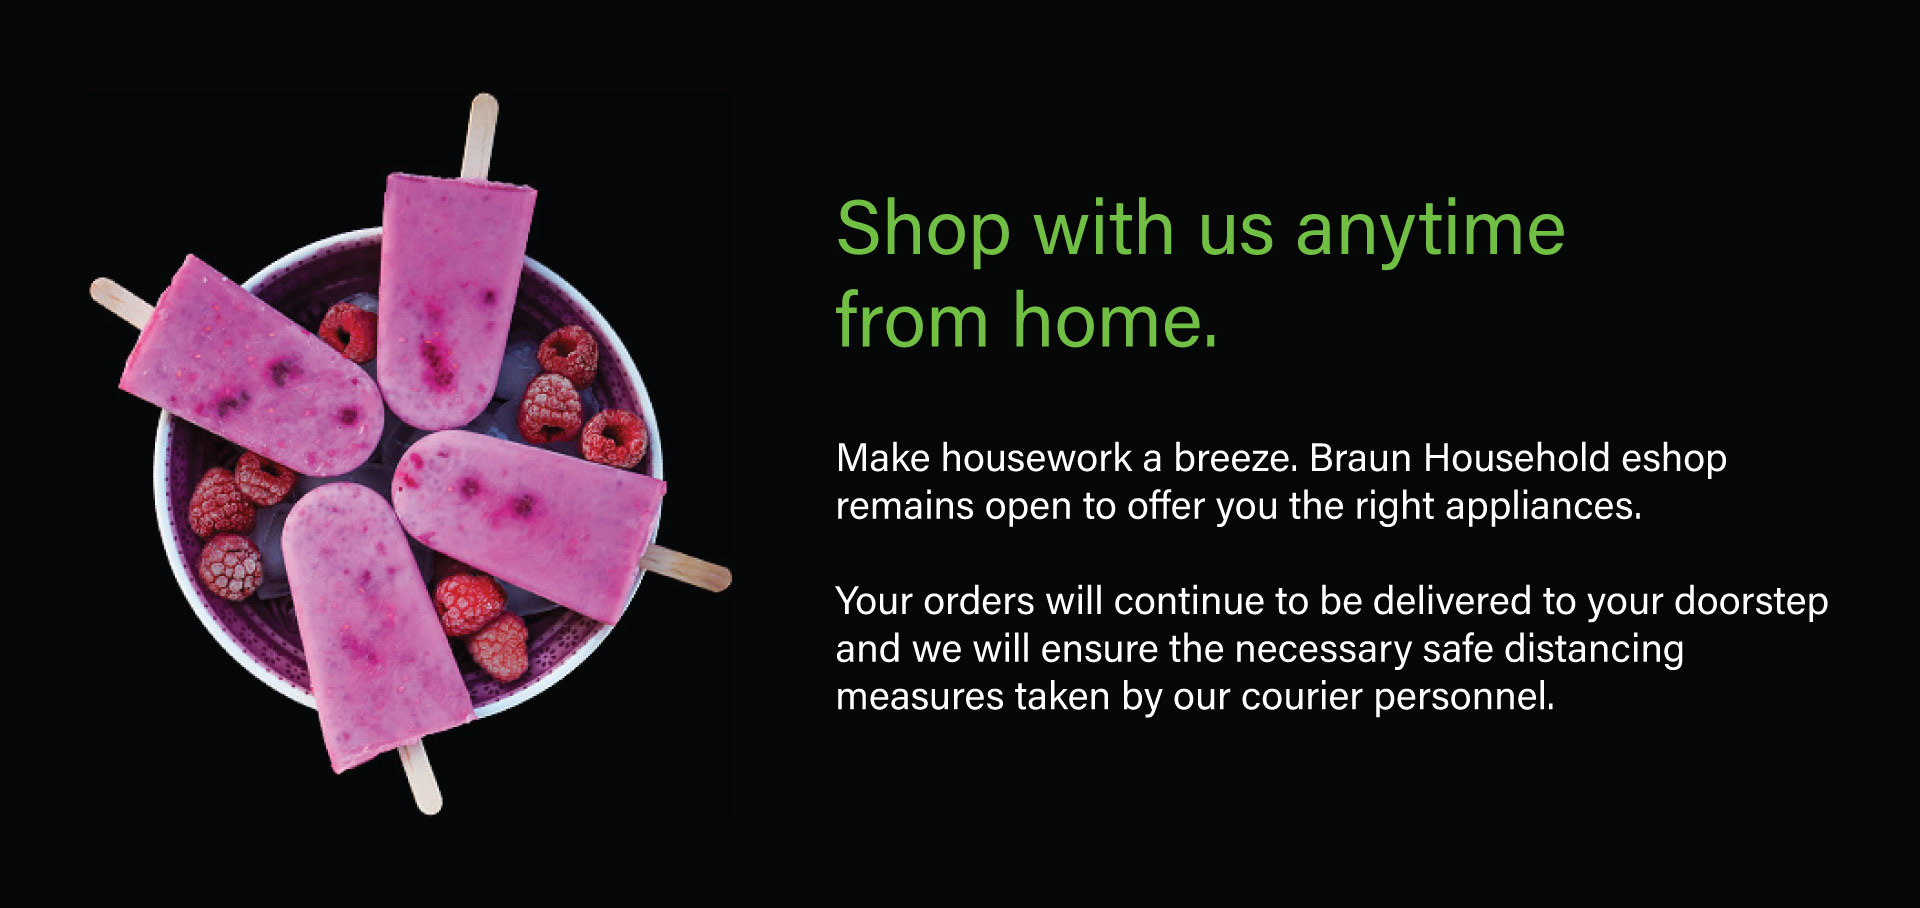 Shop with us anytime from home